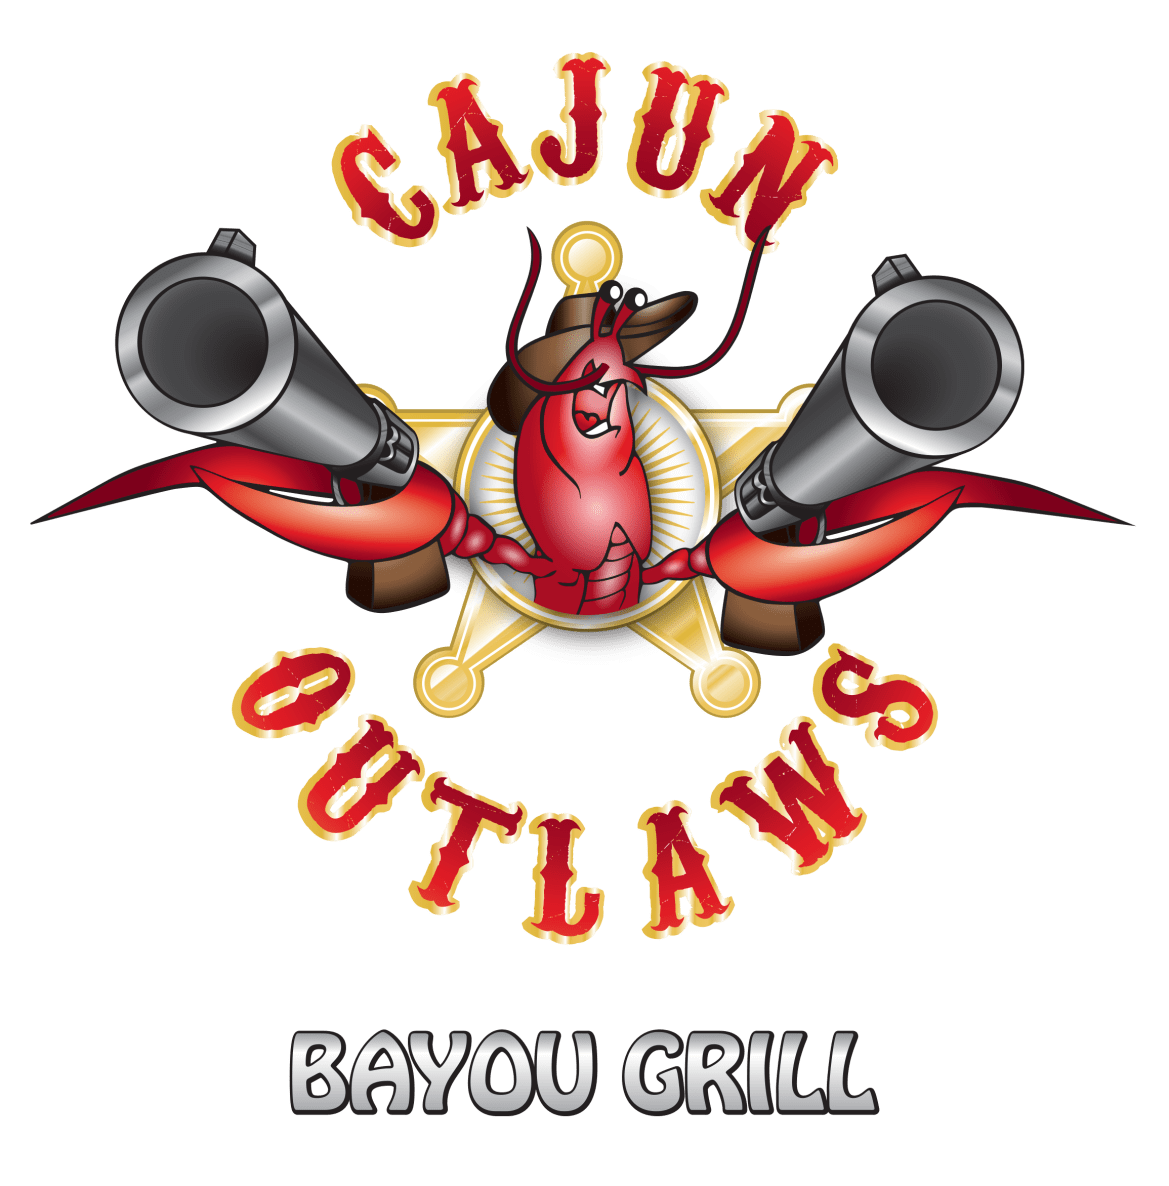 Cajun Outlaws